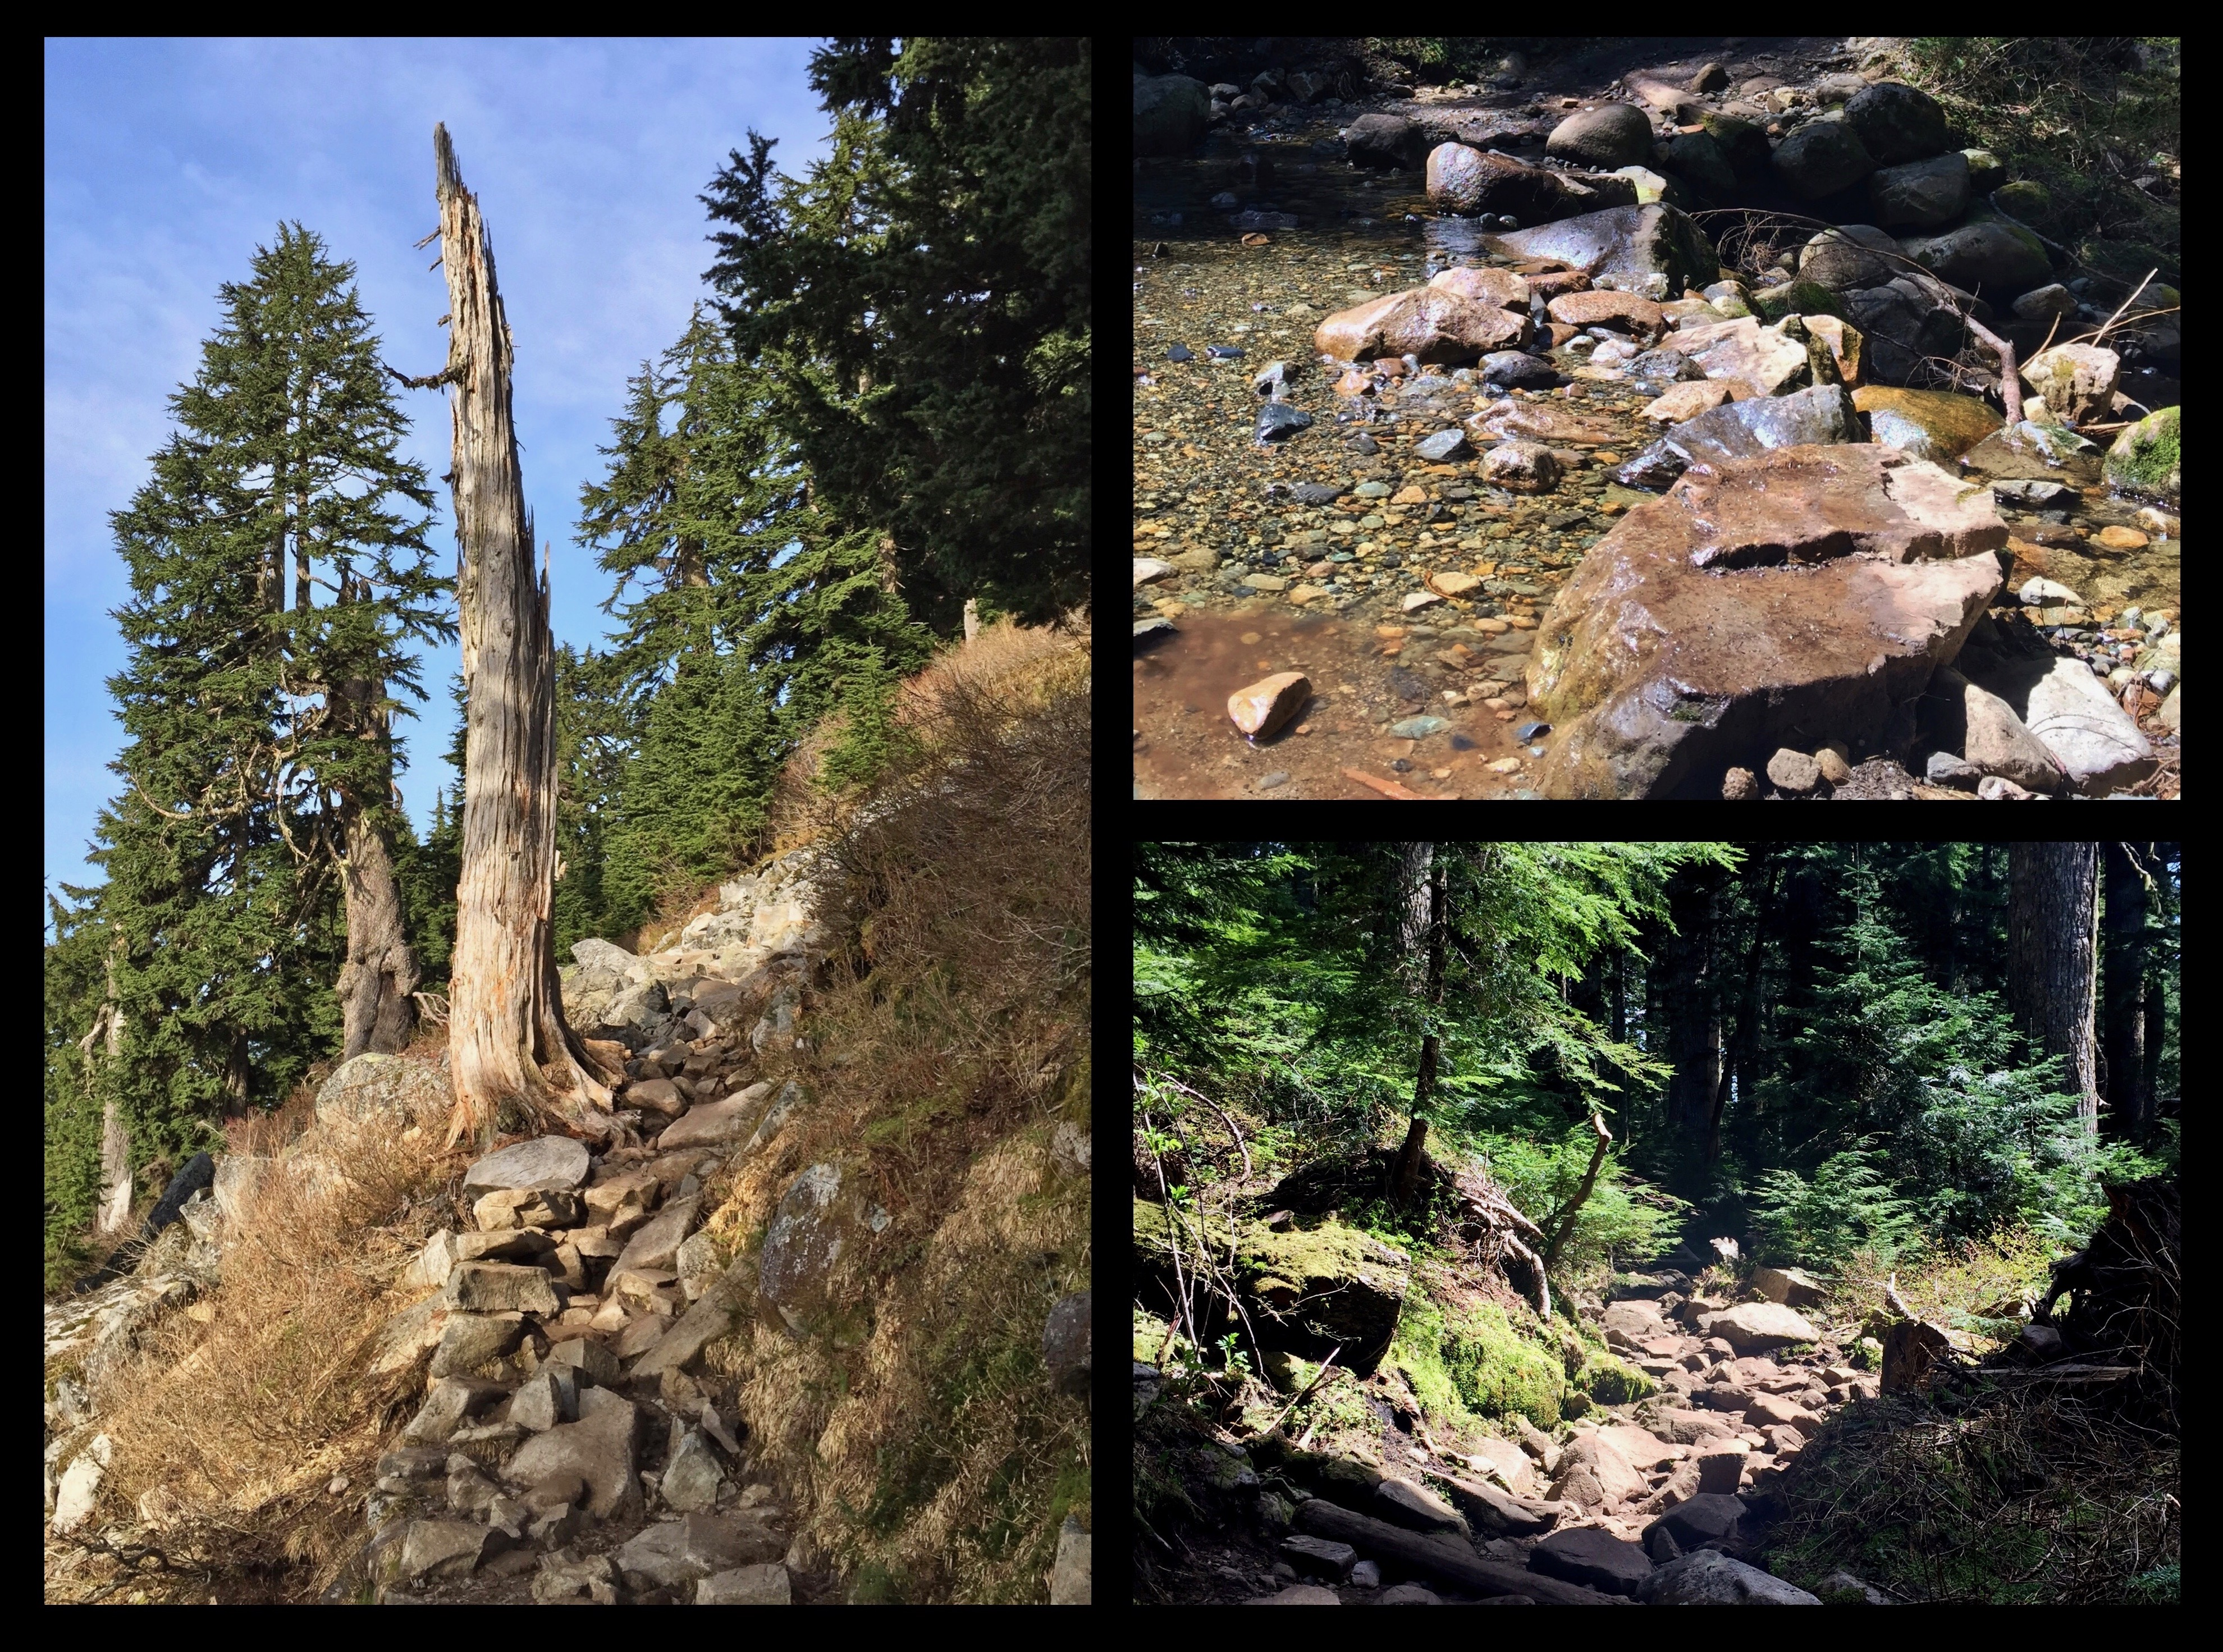 The trail is consistently rocky throughout, including where it crosses Rotary Creek by stepping stones not far from the trailhead. Mount Pilchuck Trail, May 09, 2015.